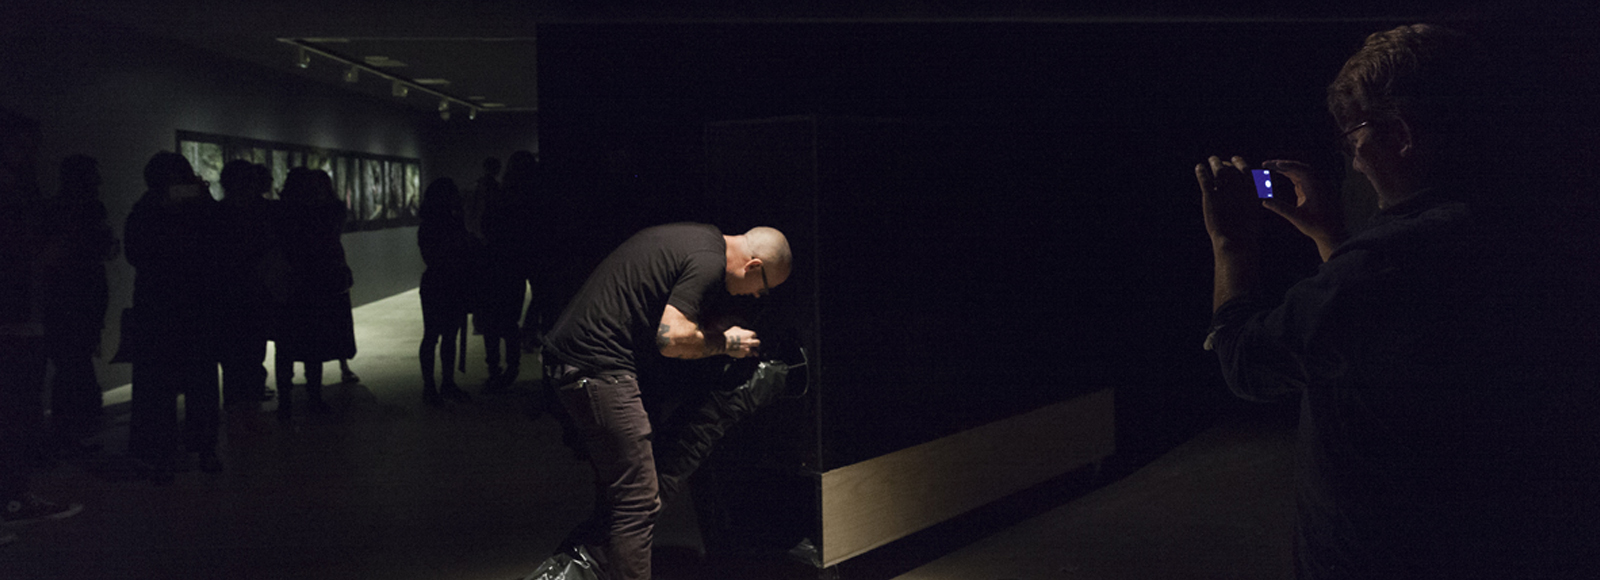 Russell Lowe, Dark Machines- Presence in the Sublime, installation shot. Image by silversalt